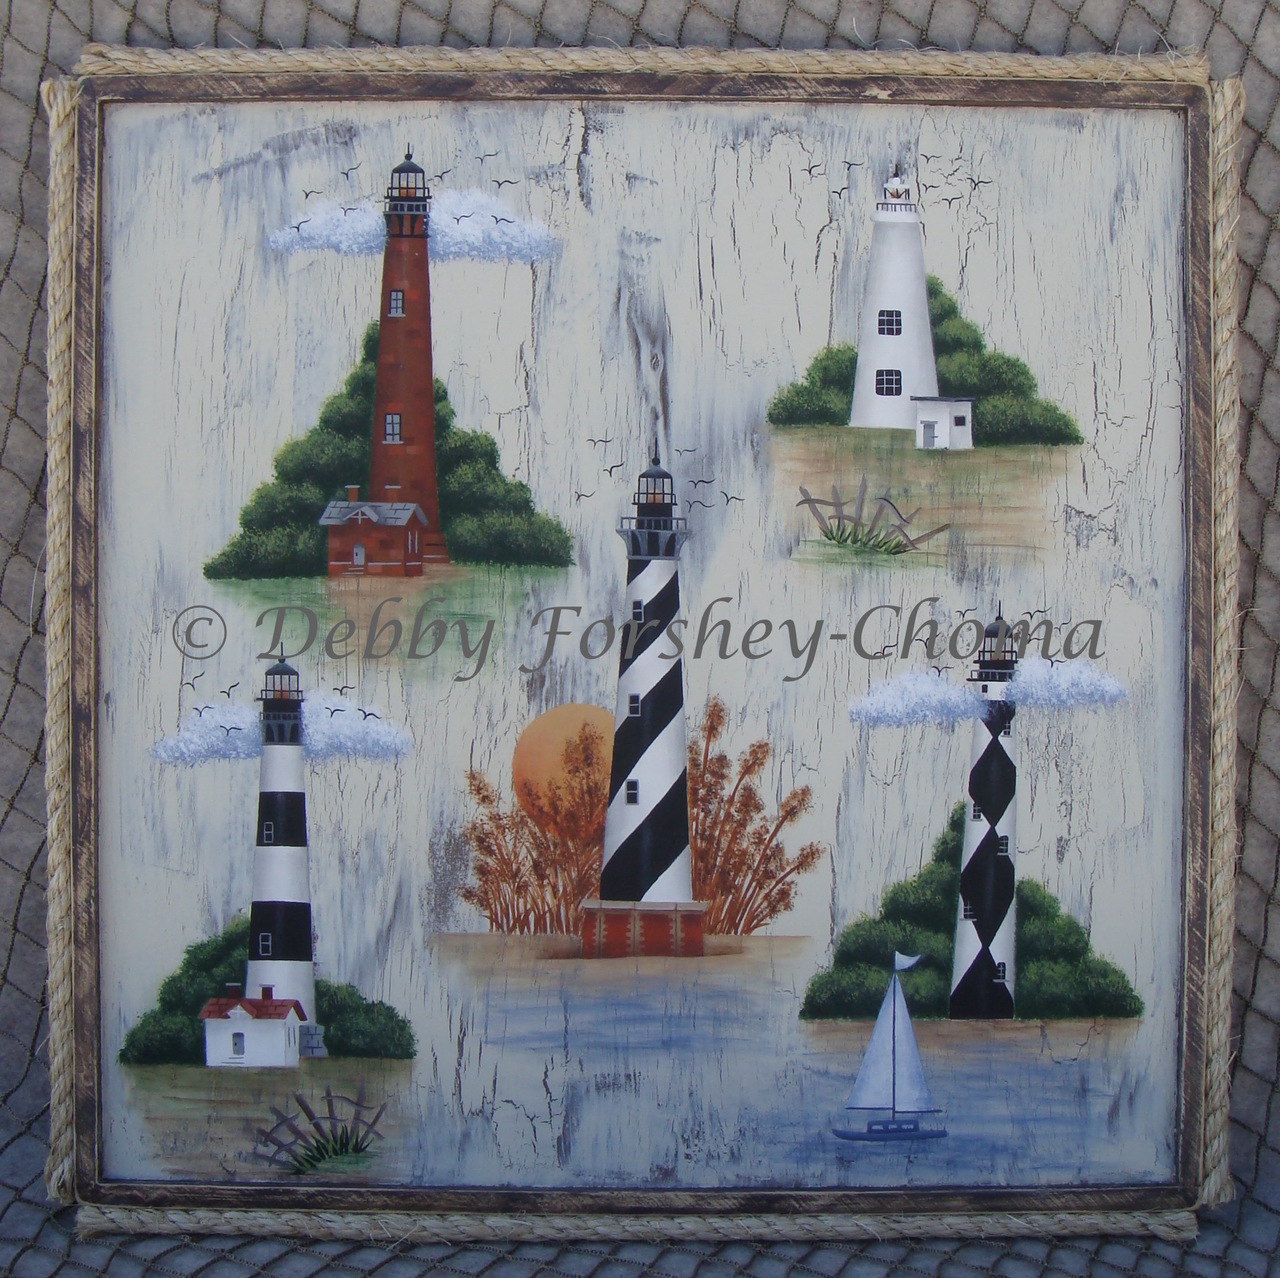 OBX Lighthouses - E-Packet - Debby Forshey-Choma